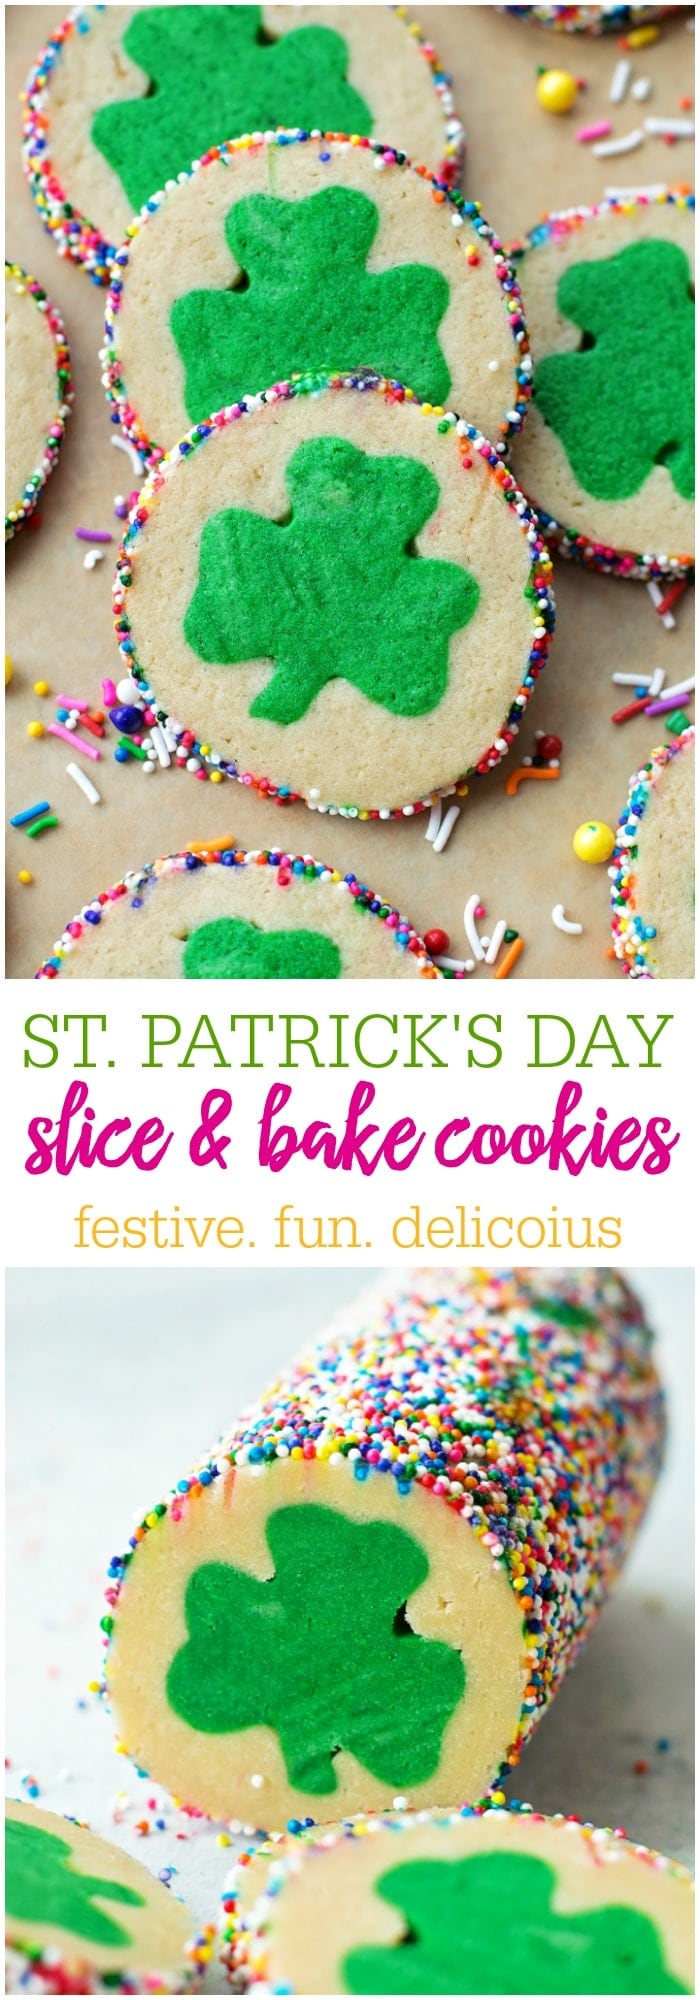 St. Patrick's Day Slice and Bake Cookies - the perfect treat to make for the March holiday!